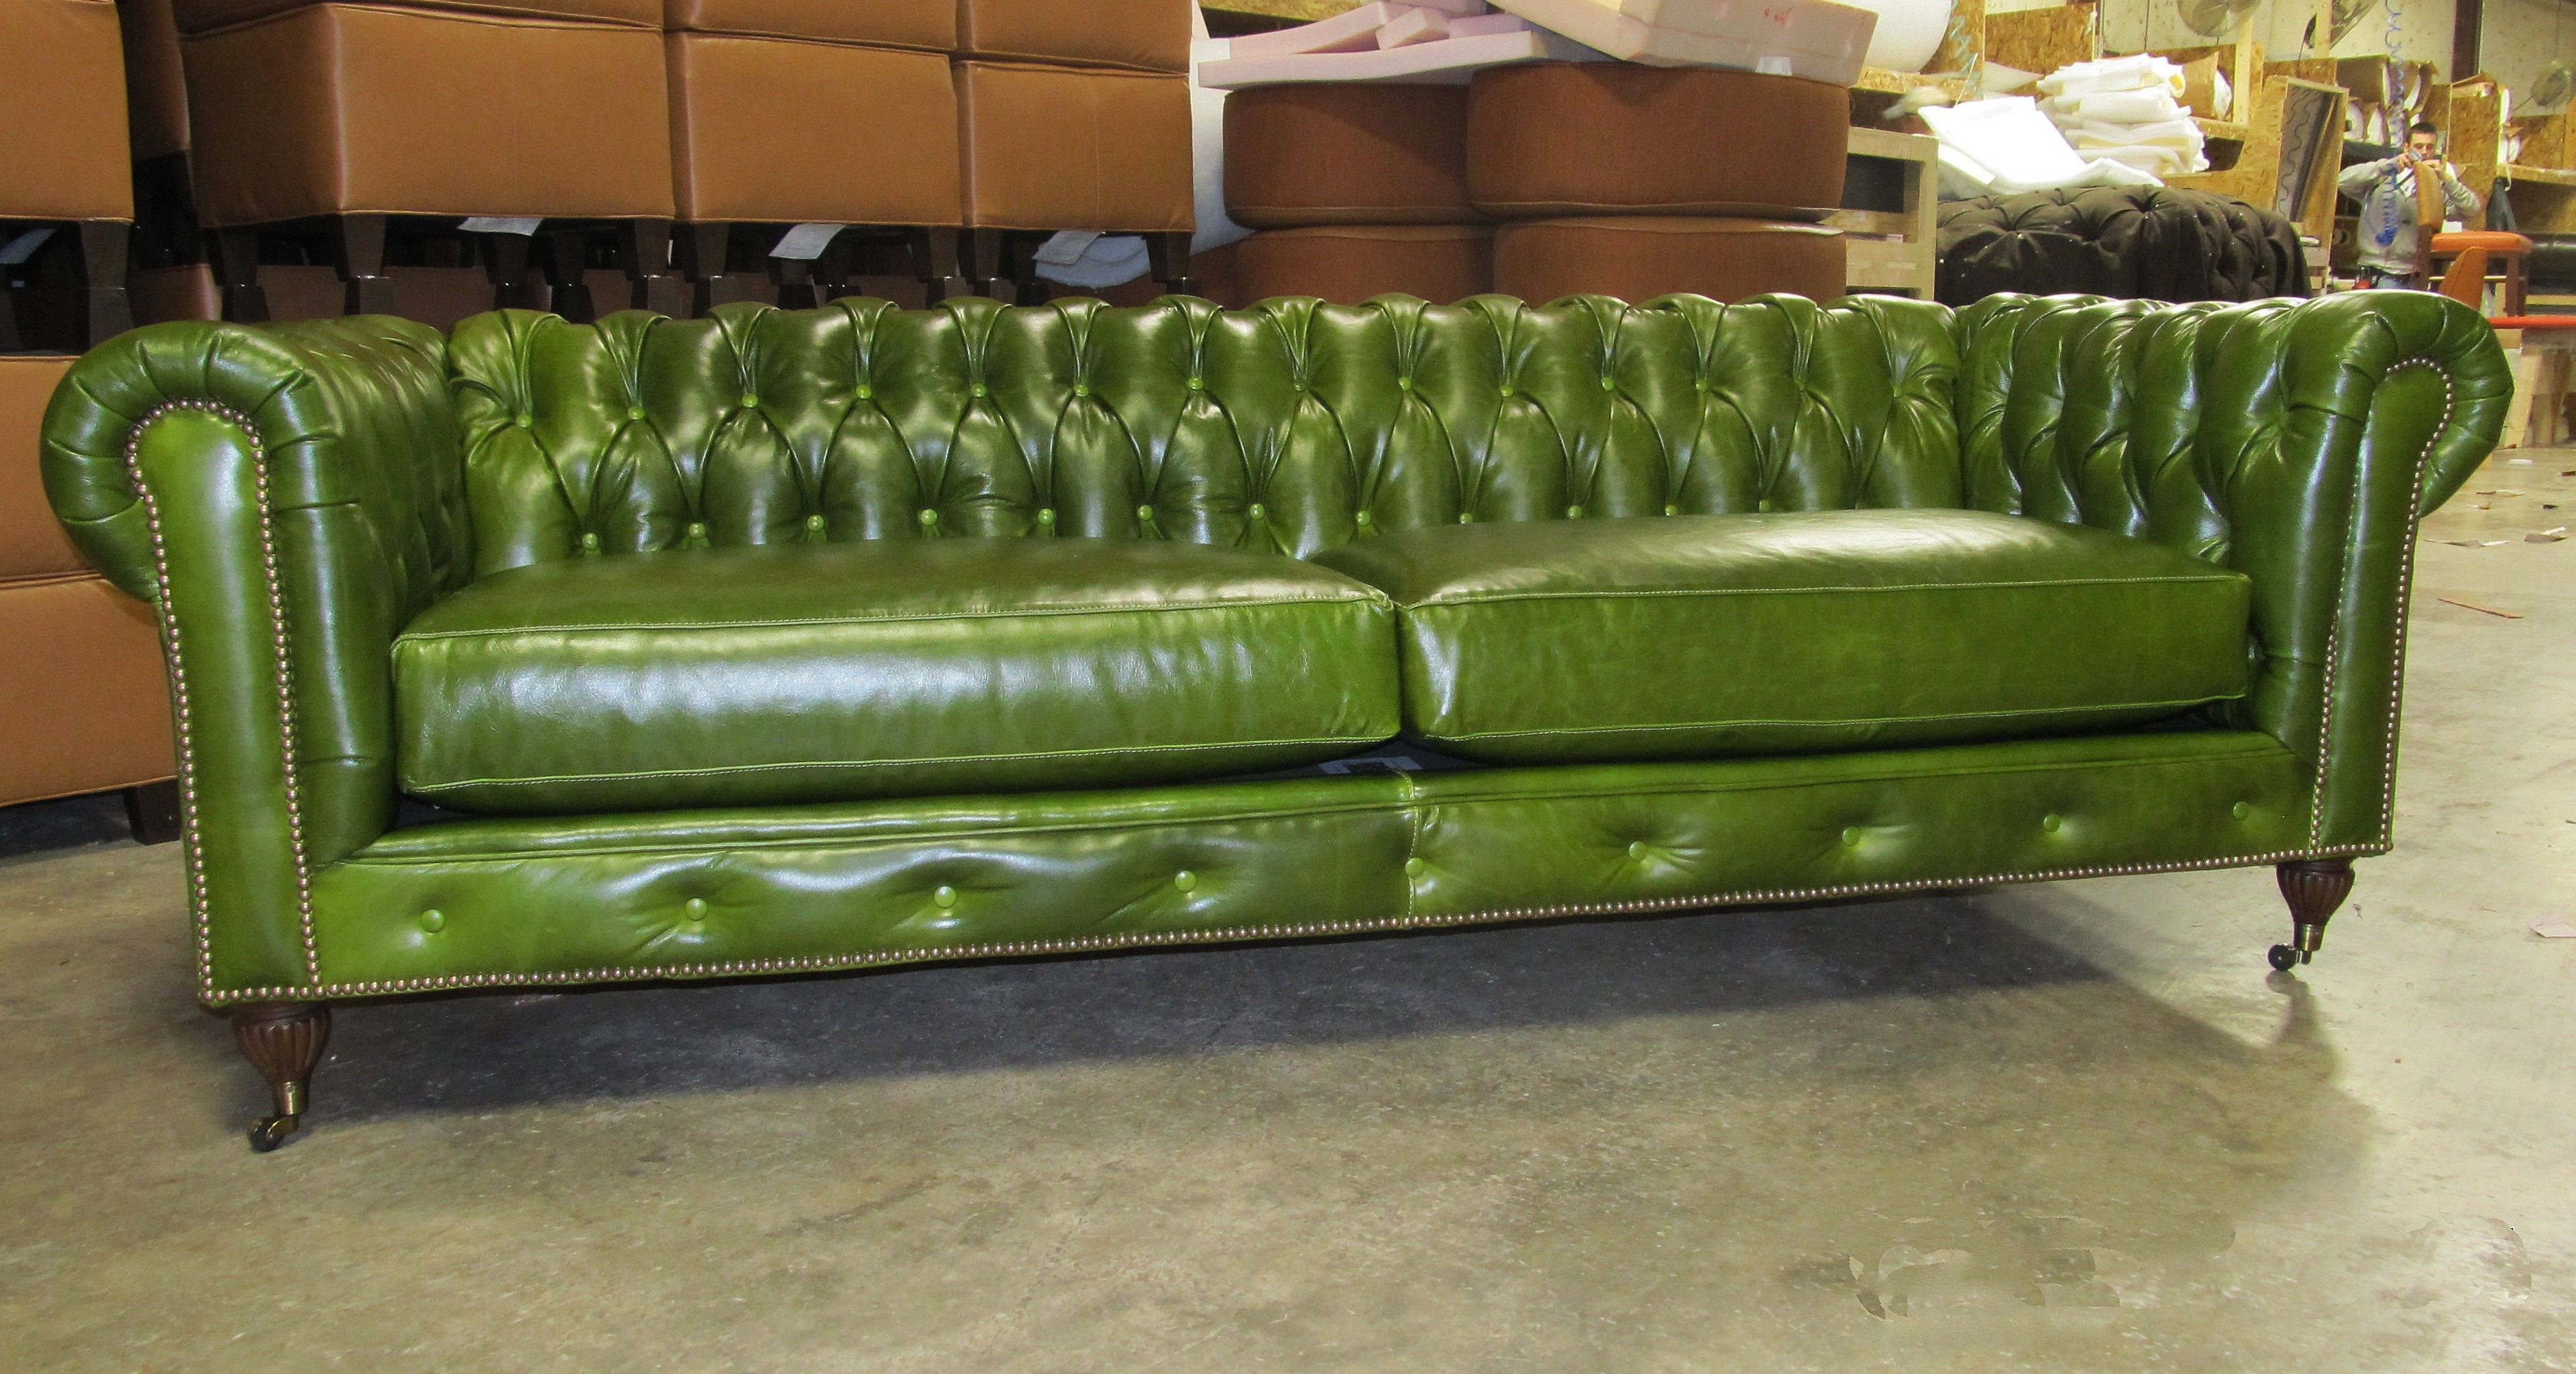 Swell Money Green Leather Sofa Deco Pinterest Green Leather Download Free Architecture Designs Scobabritishbridgeorg